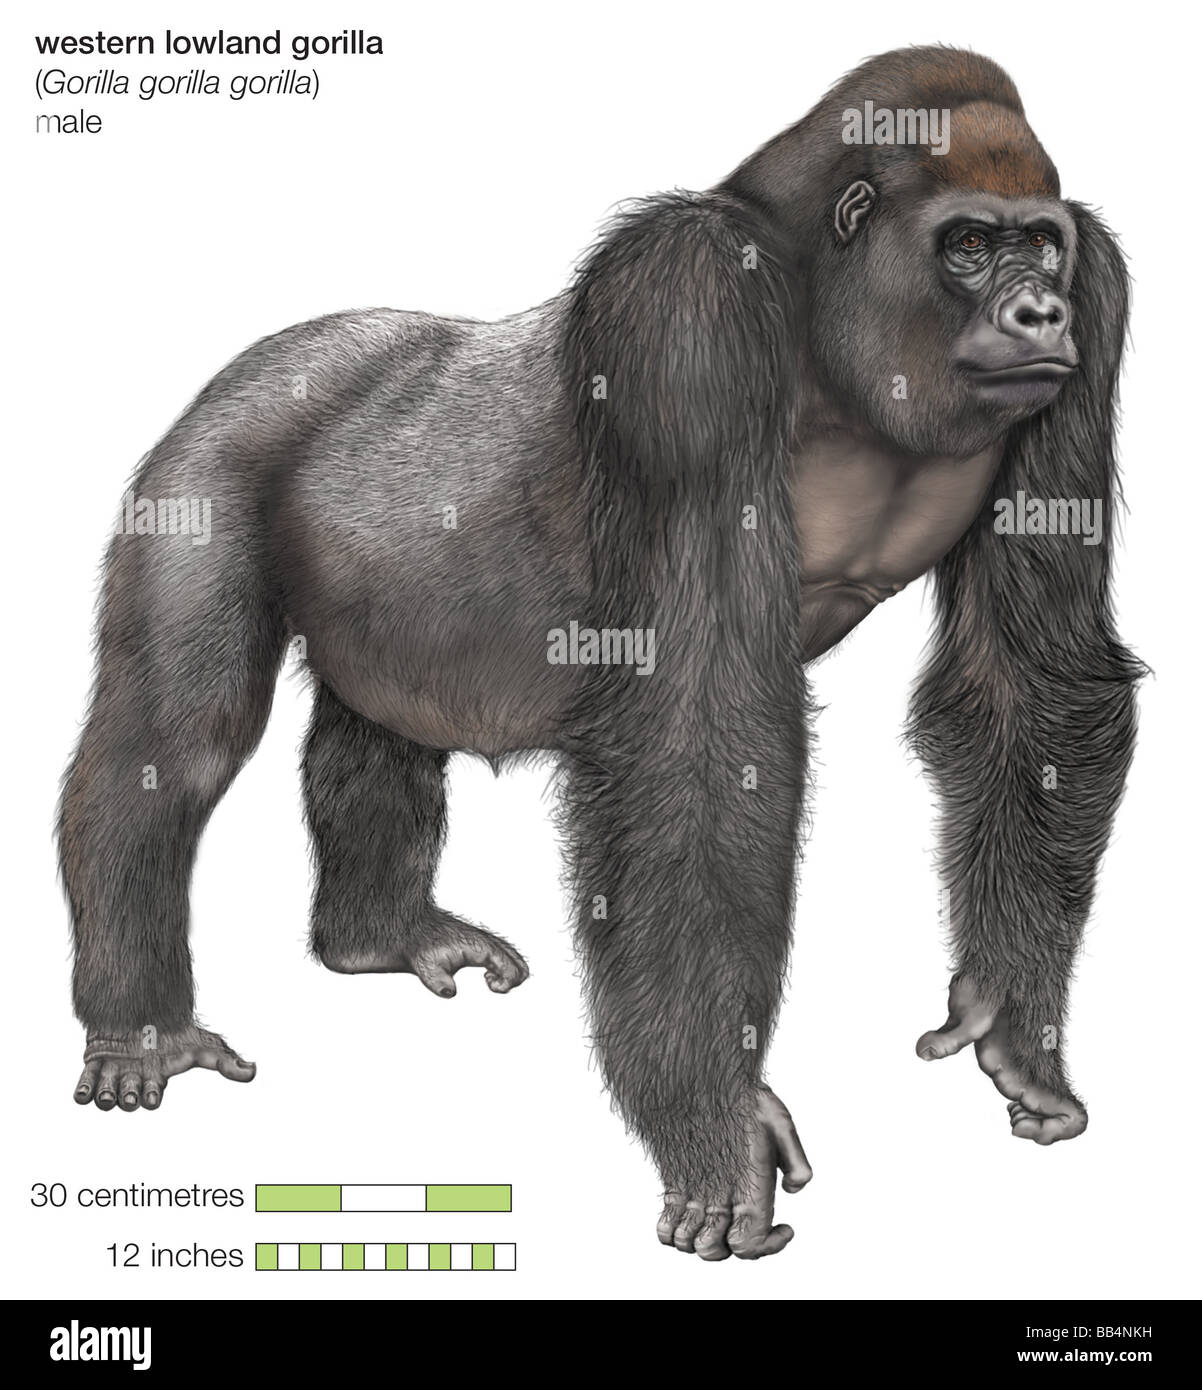 Male western lowland gorilla - Stock Image